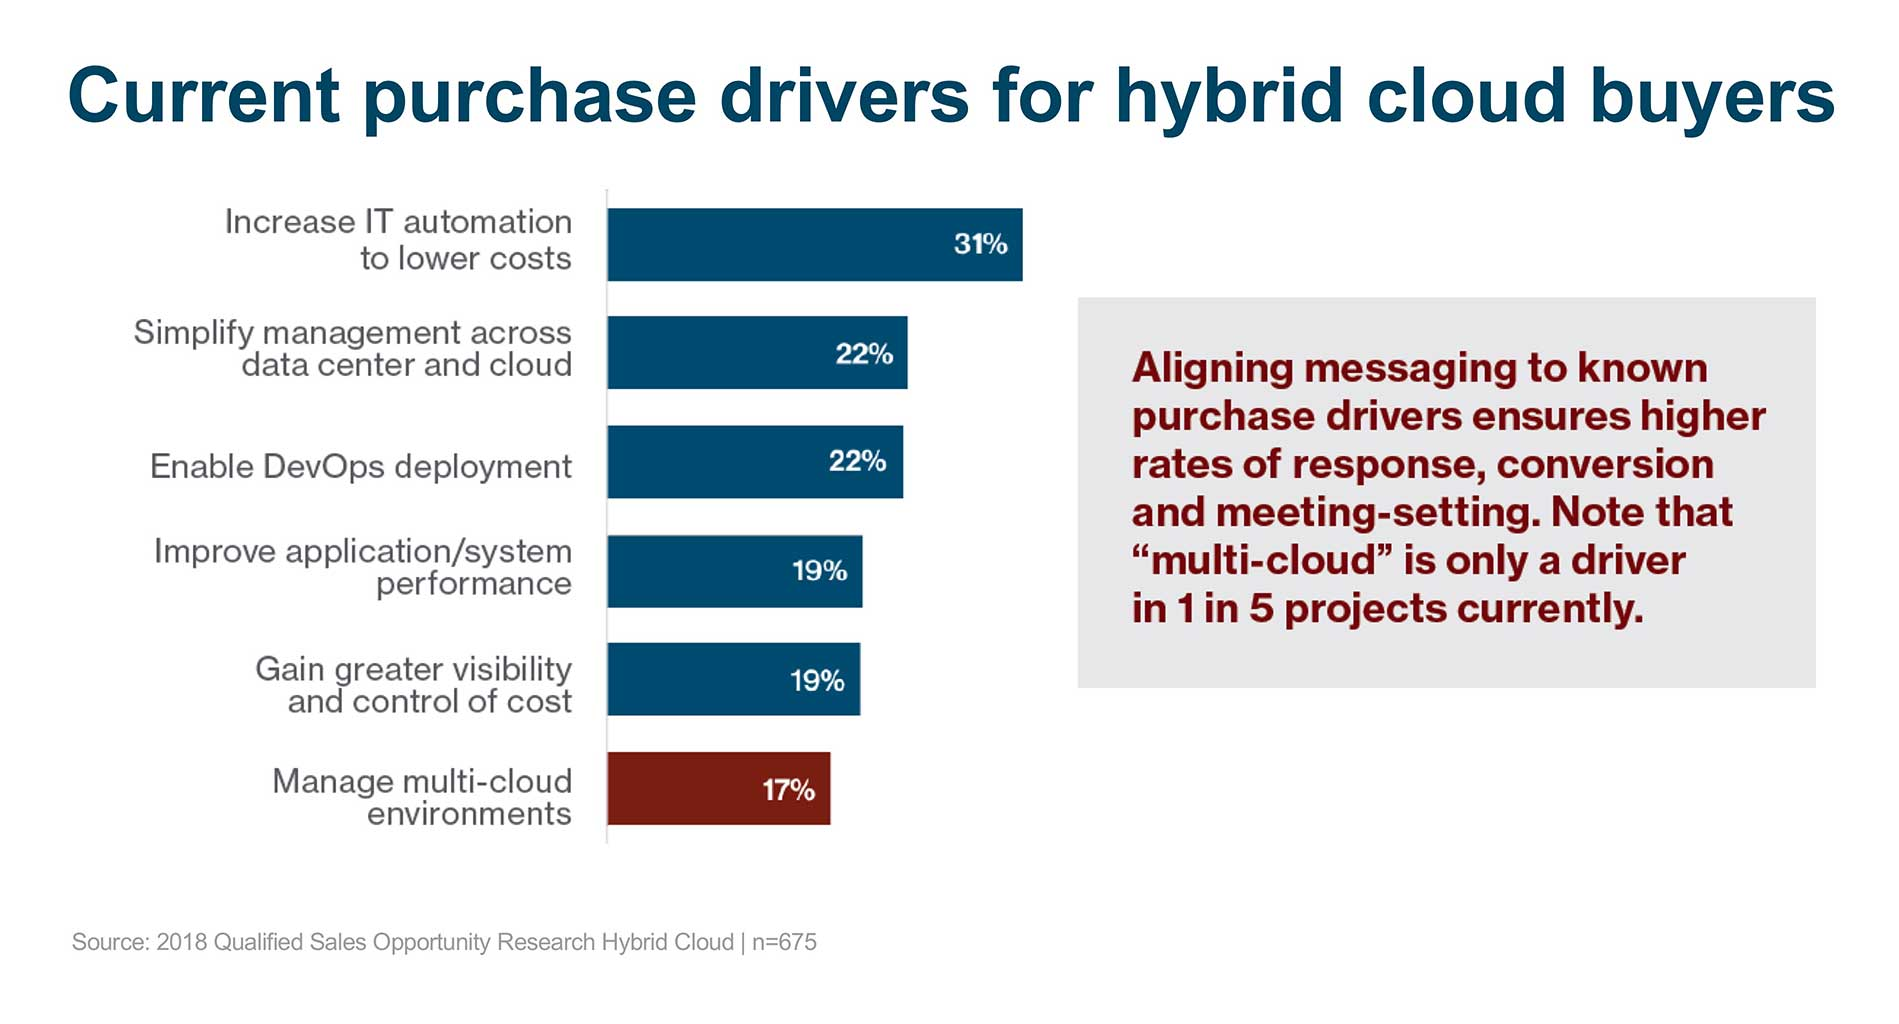 Current purchase drivers for hybrid cloud buyers